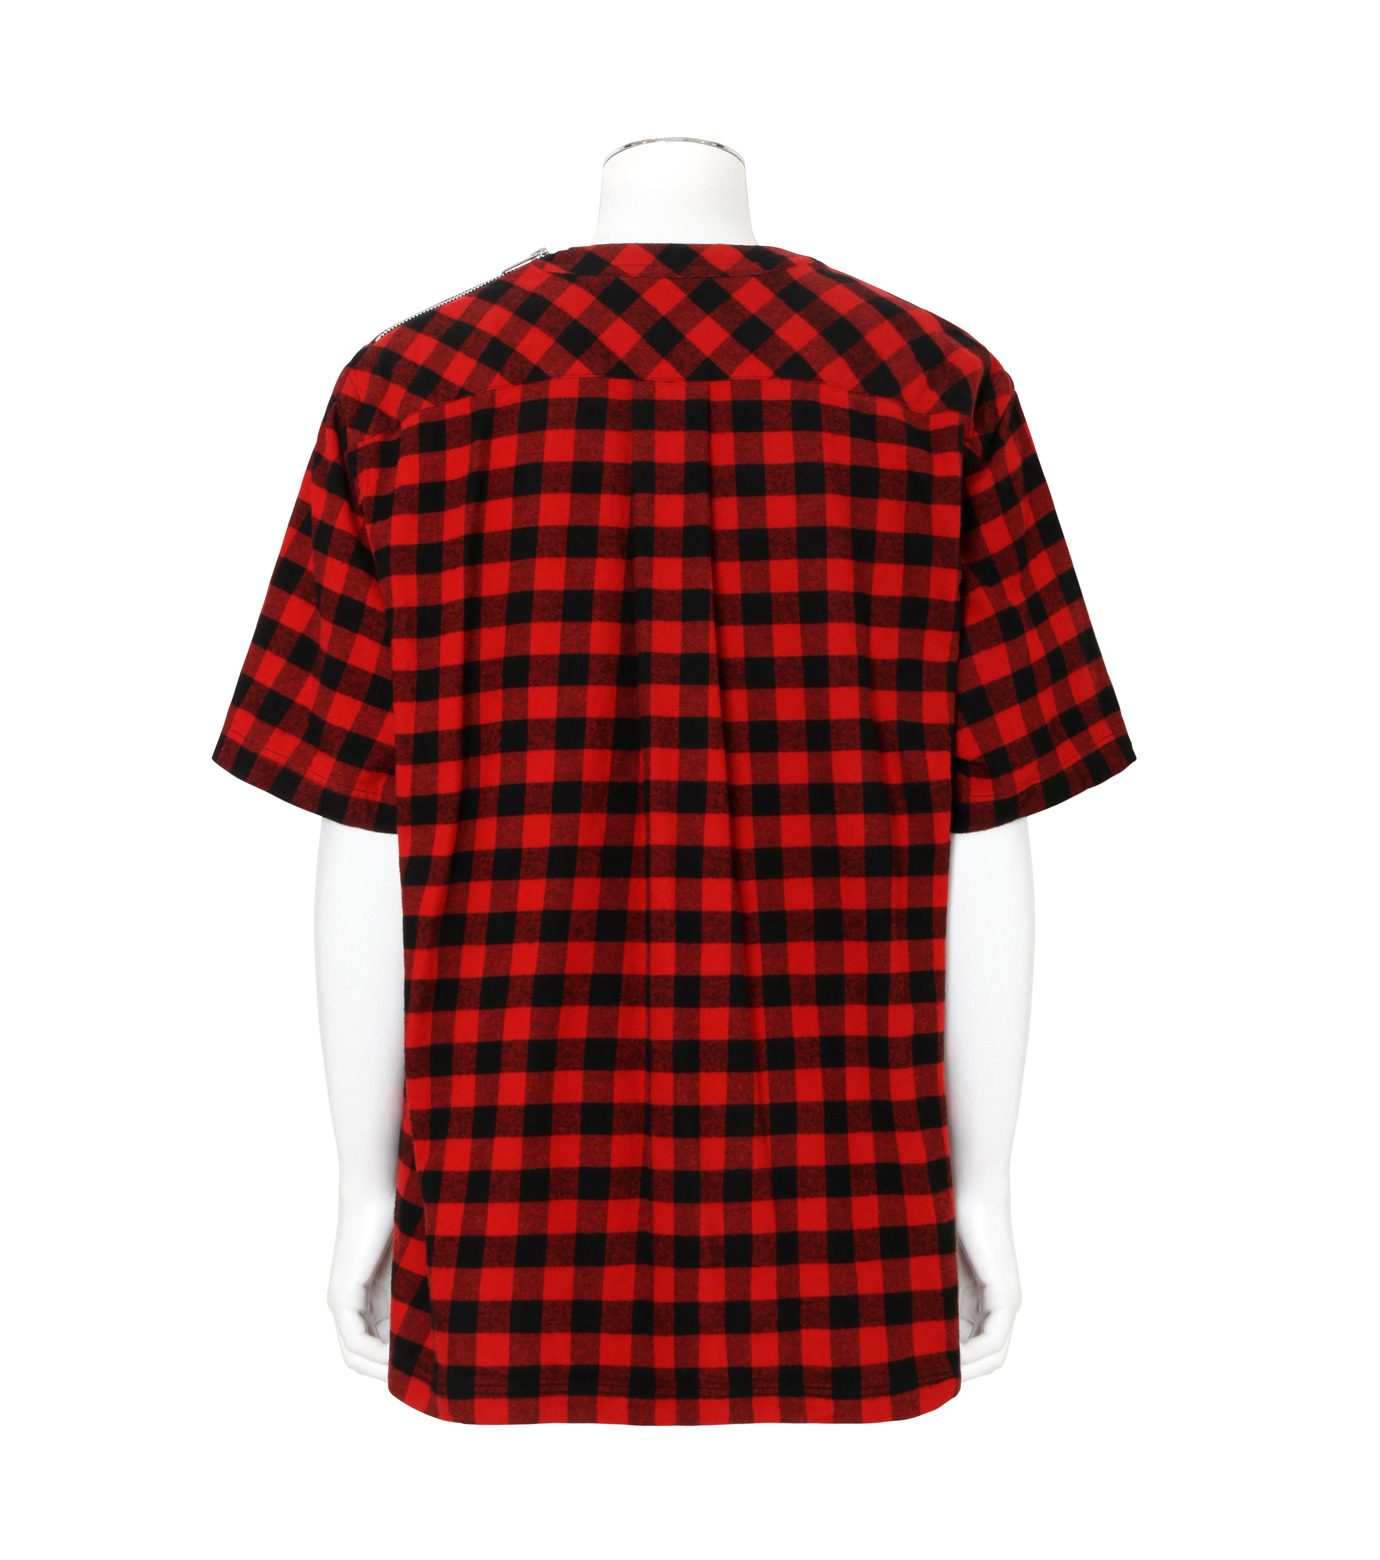 Sacai(サカイ)のTartan Check Pullover-RED(カットソー/cut and sewn)-17-01239M-62 拡大詳細画像2